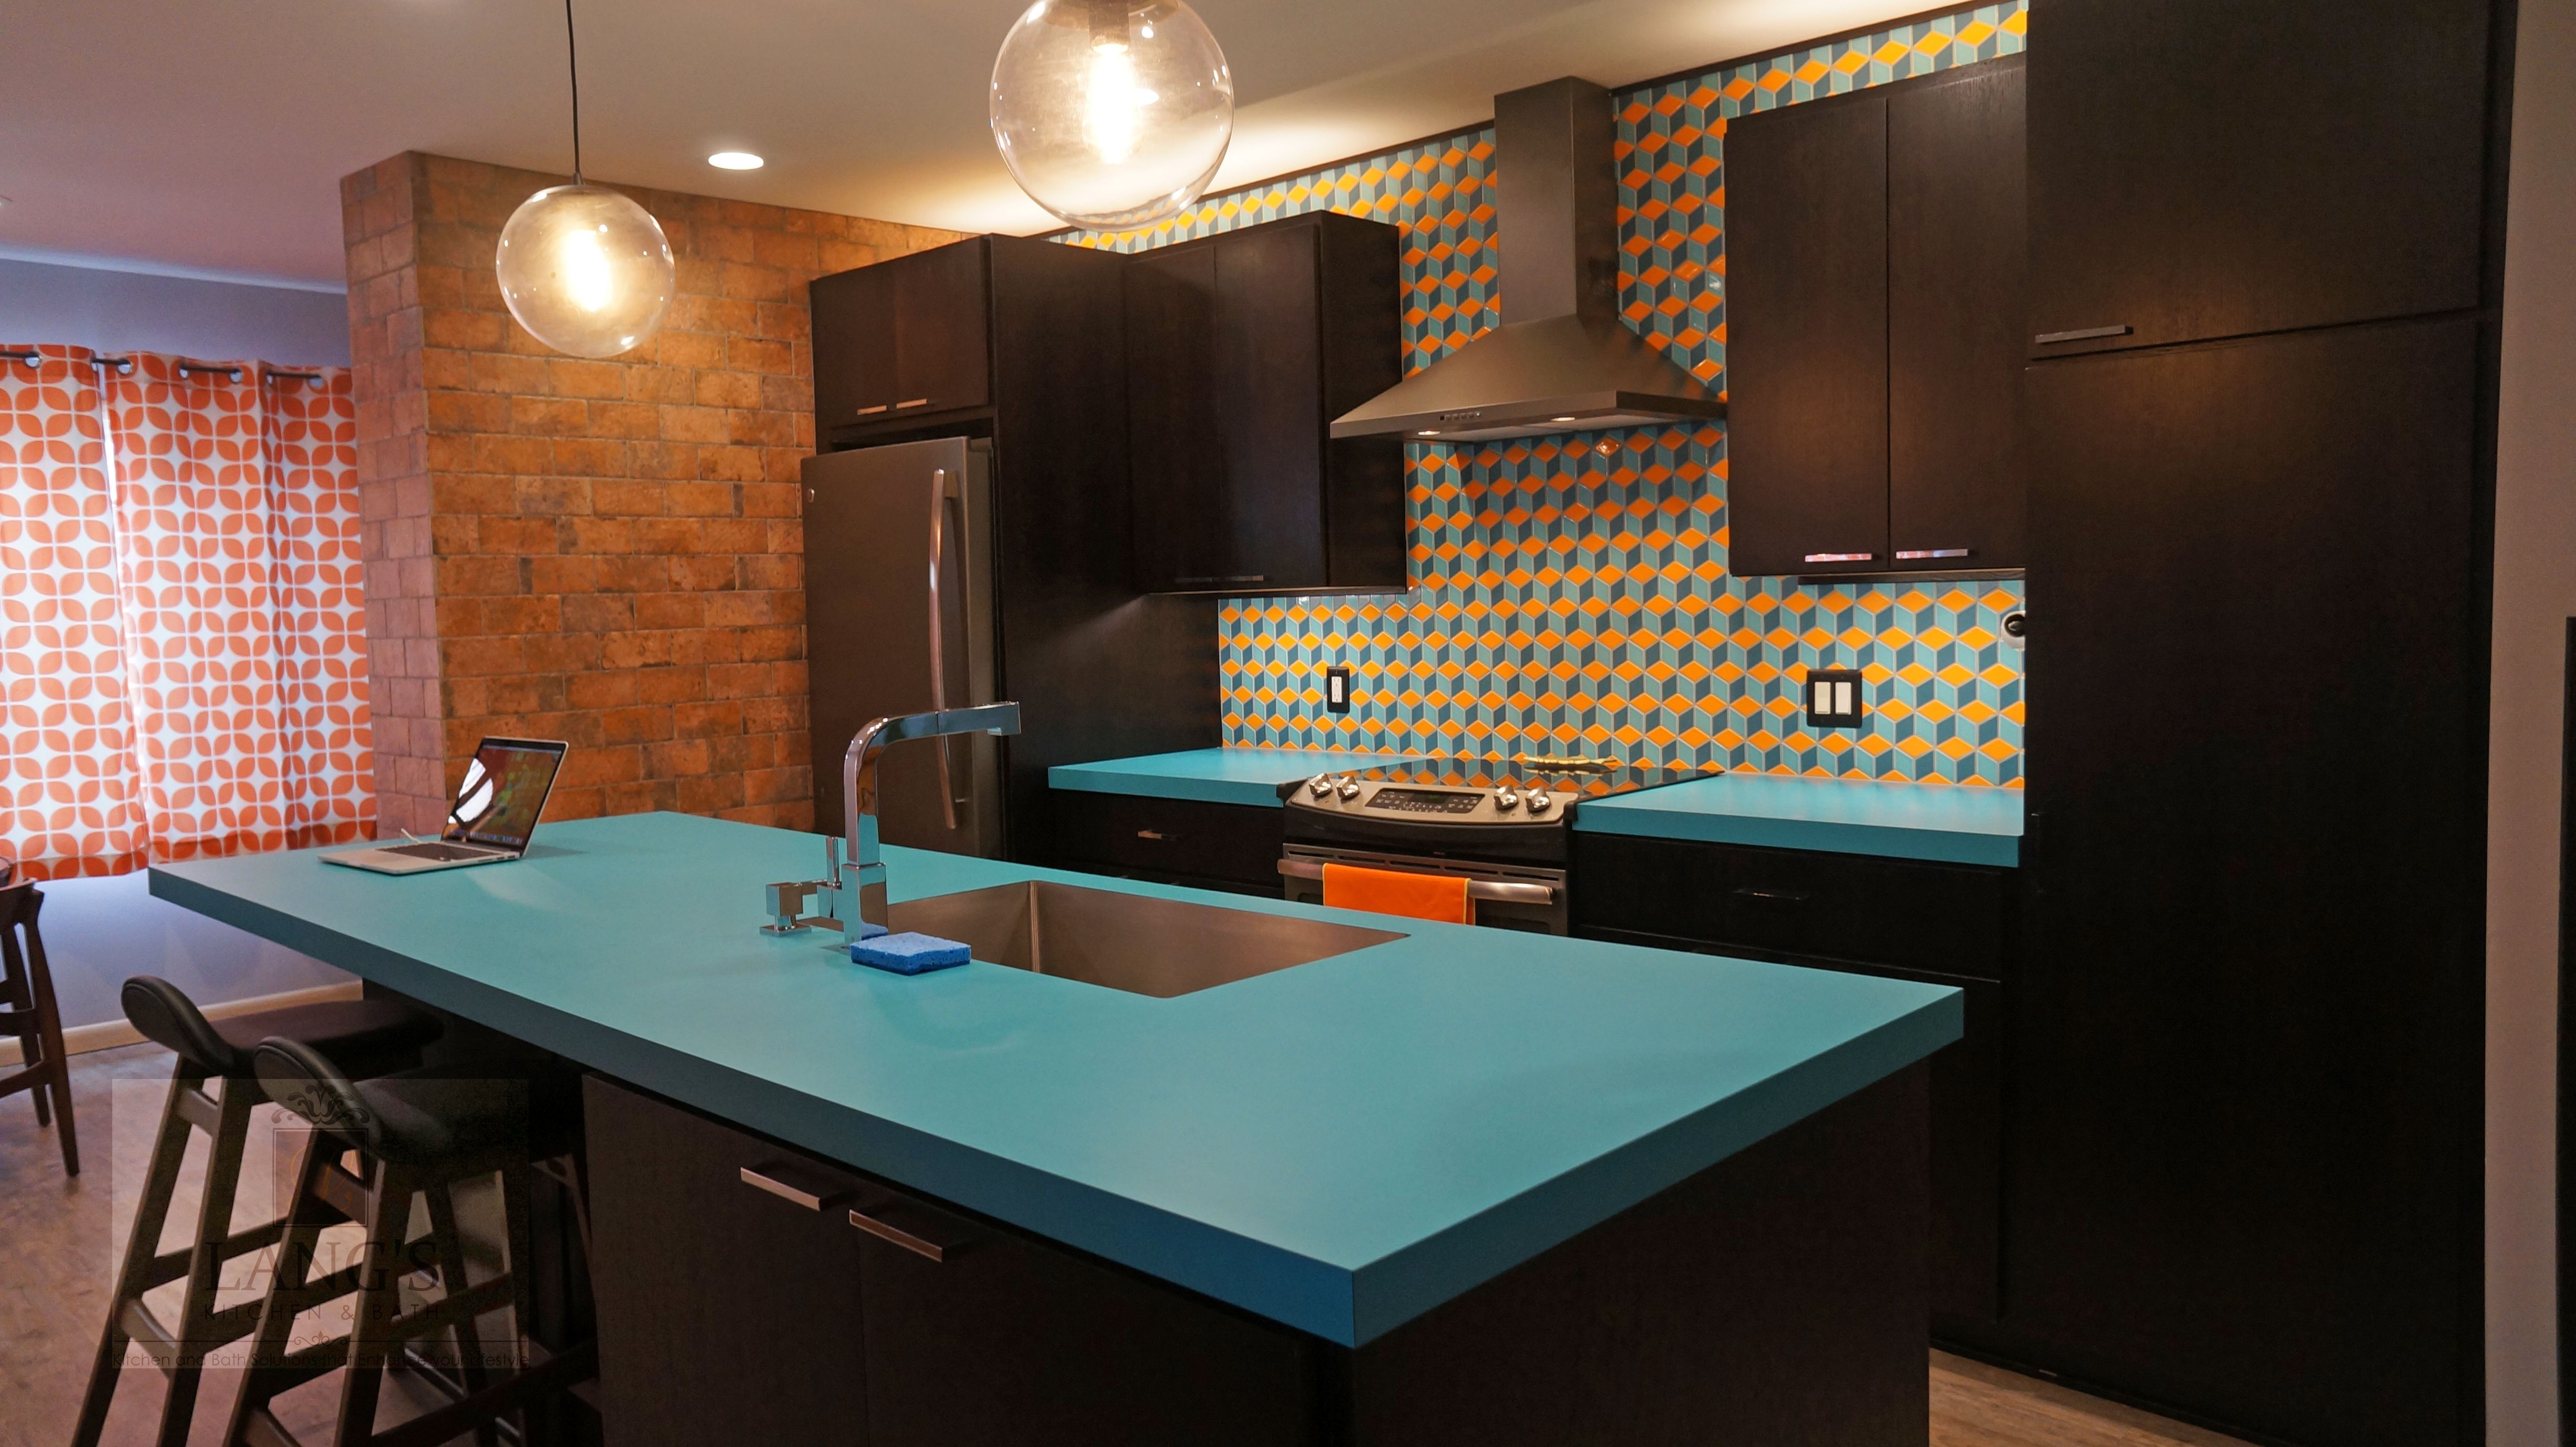 Feeling The Summer Heat Check Out These Design Tips For Keeping Your Home Cool Http Kitchen Design Showrooms Custom Kitchens Design Eclectic Kitchen Design